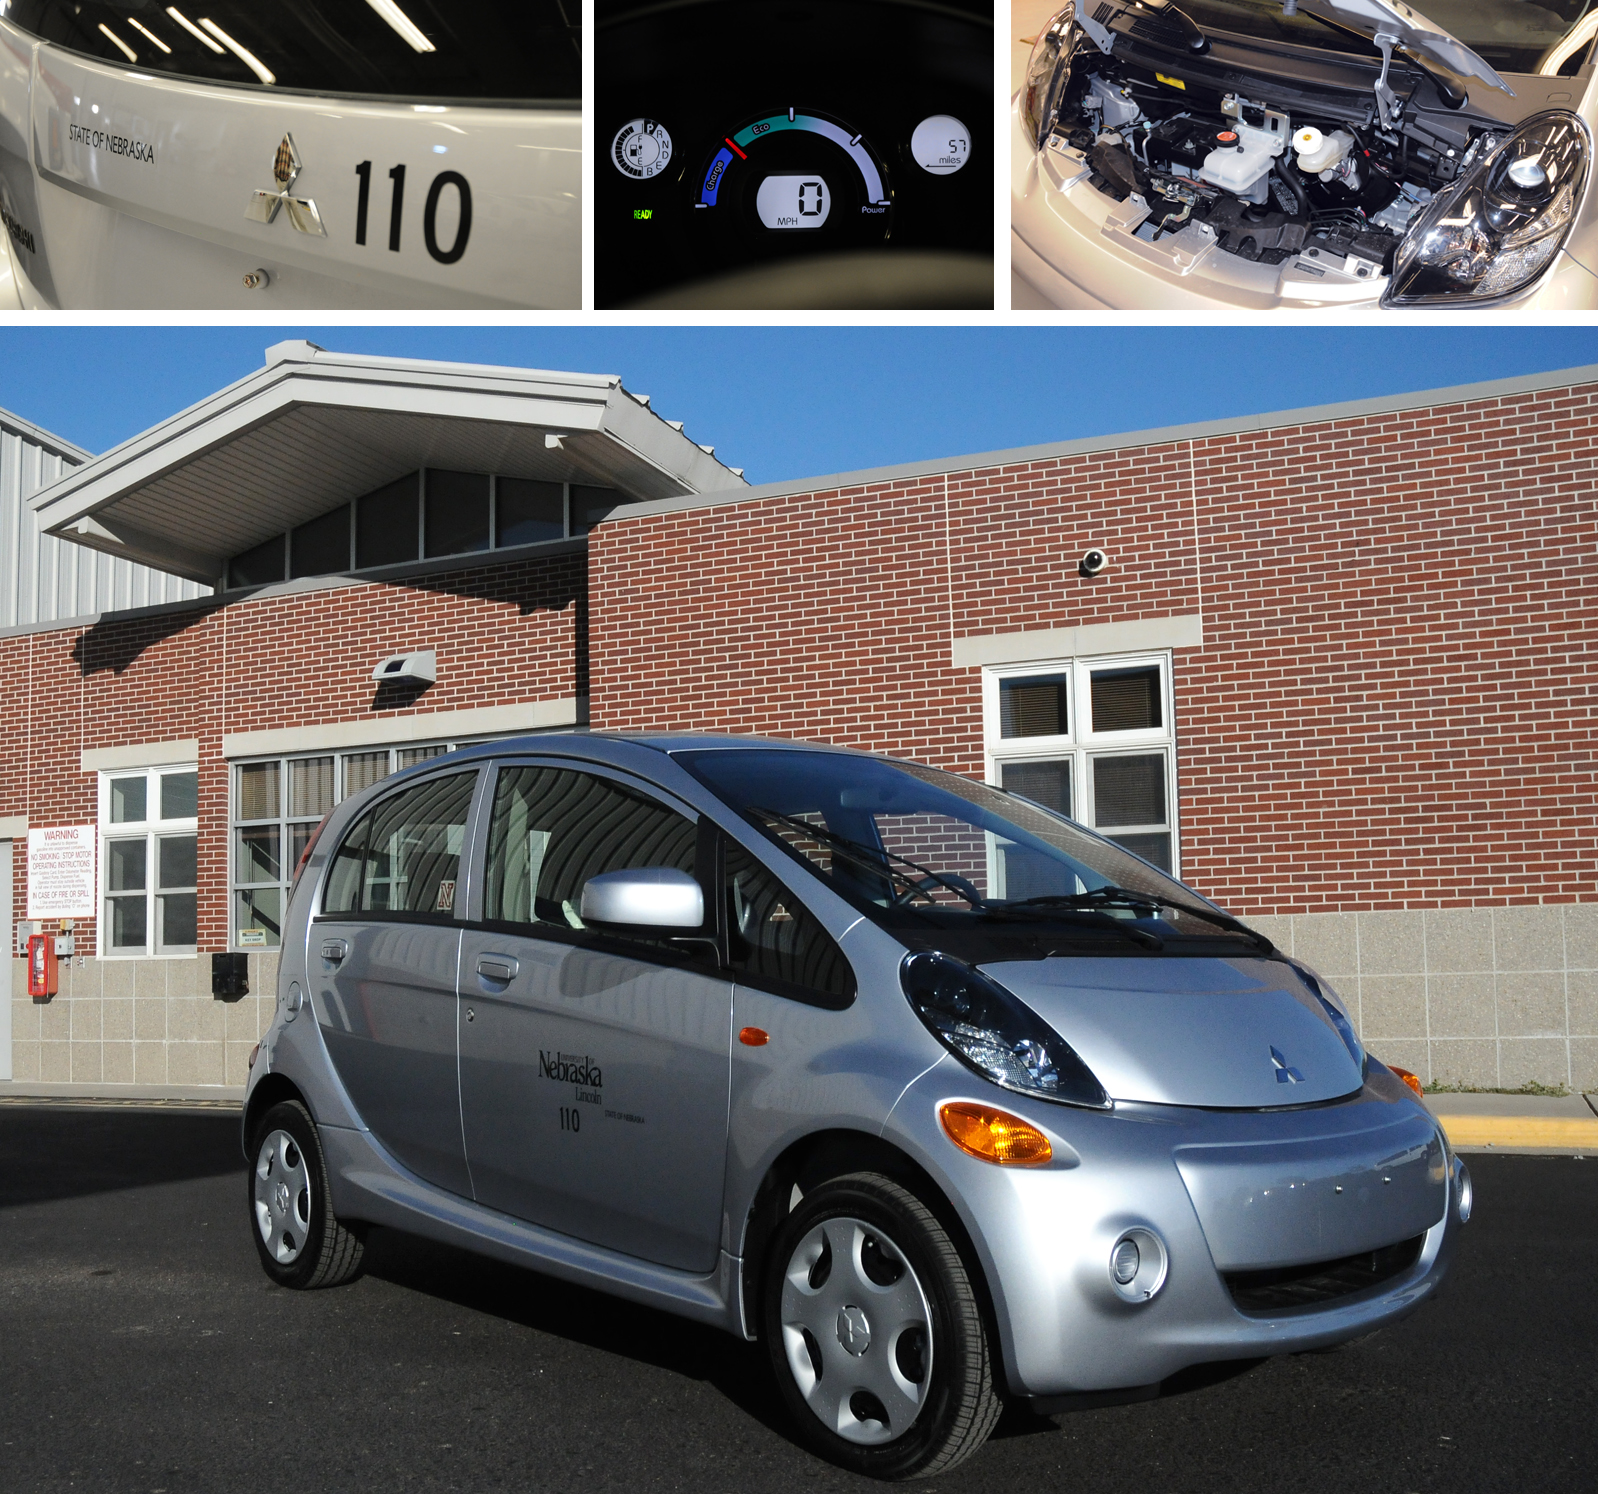 Starting Friday, Courier Servies will use the Mitsubishi i-MiEV electric cars to make campus deliveries.